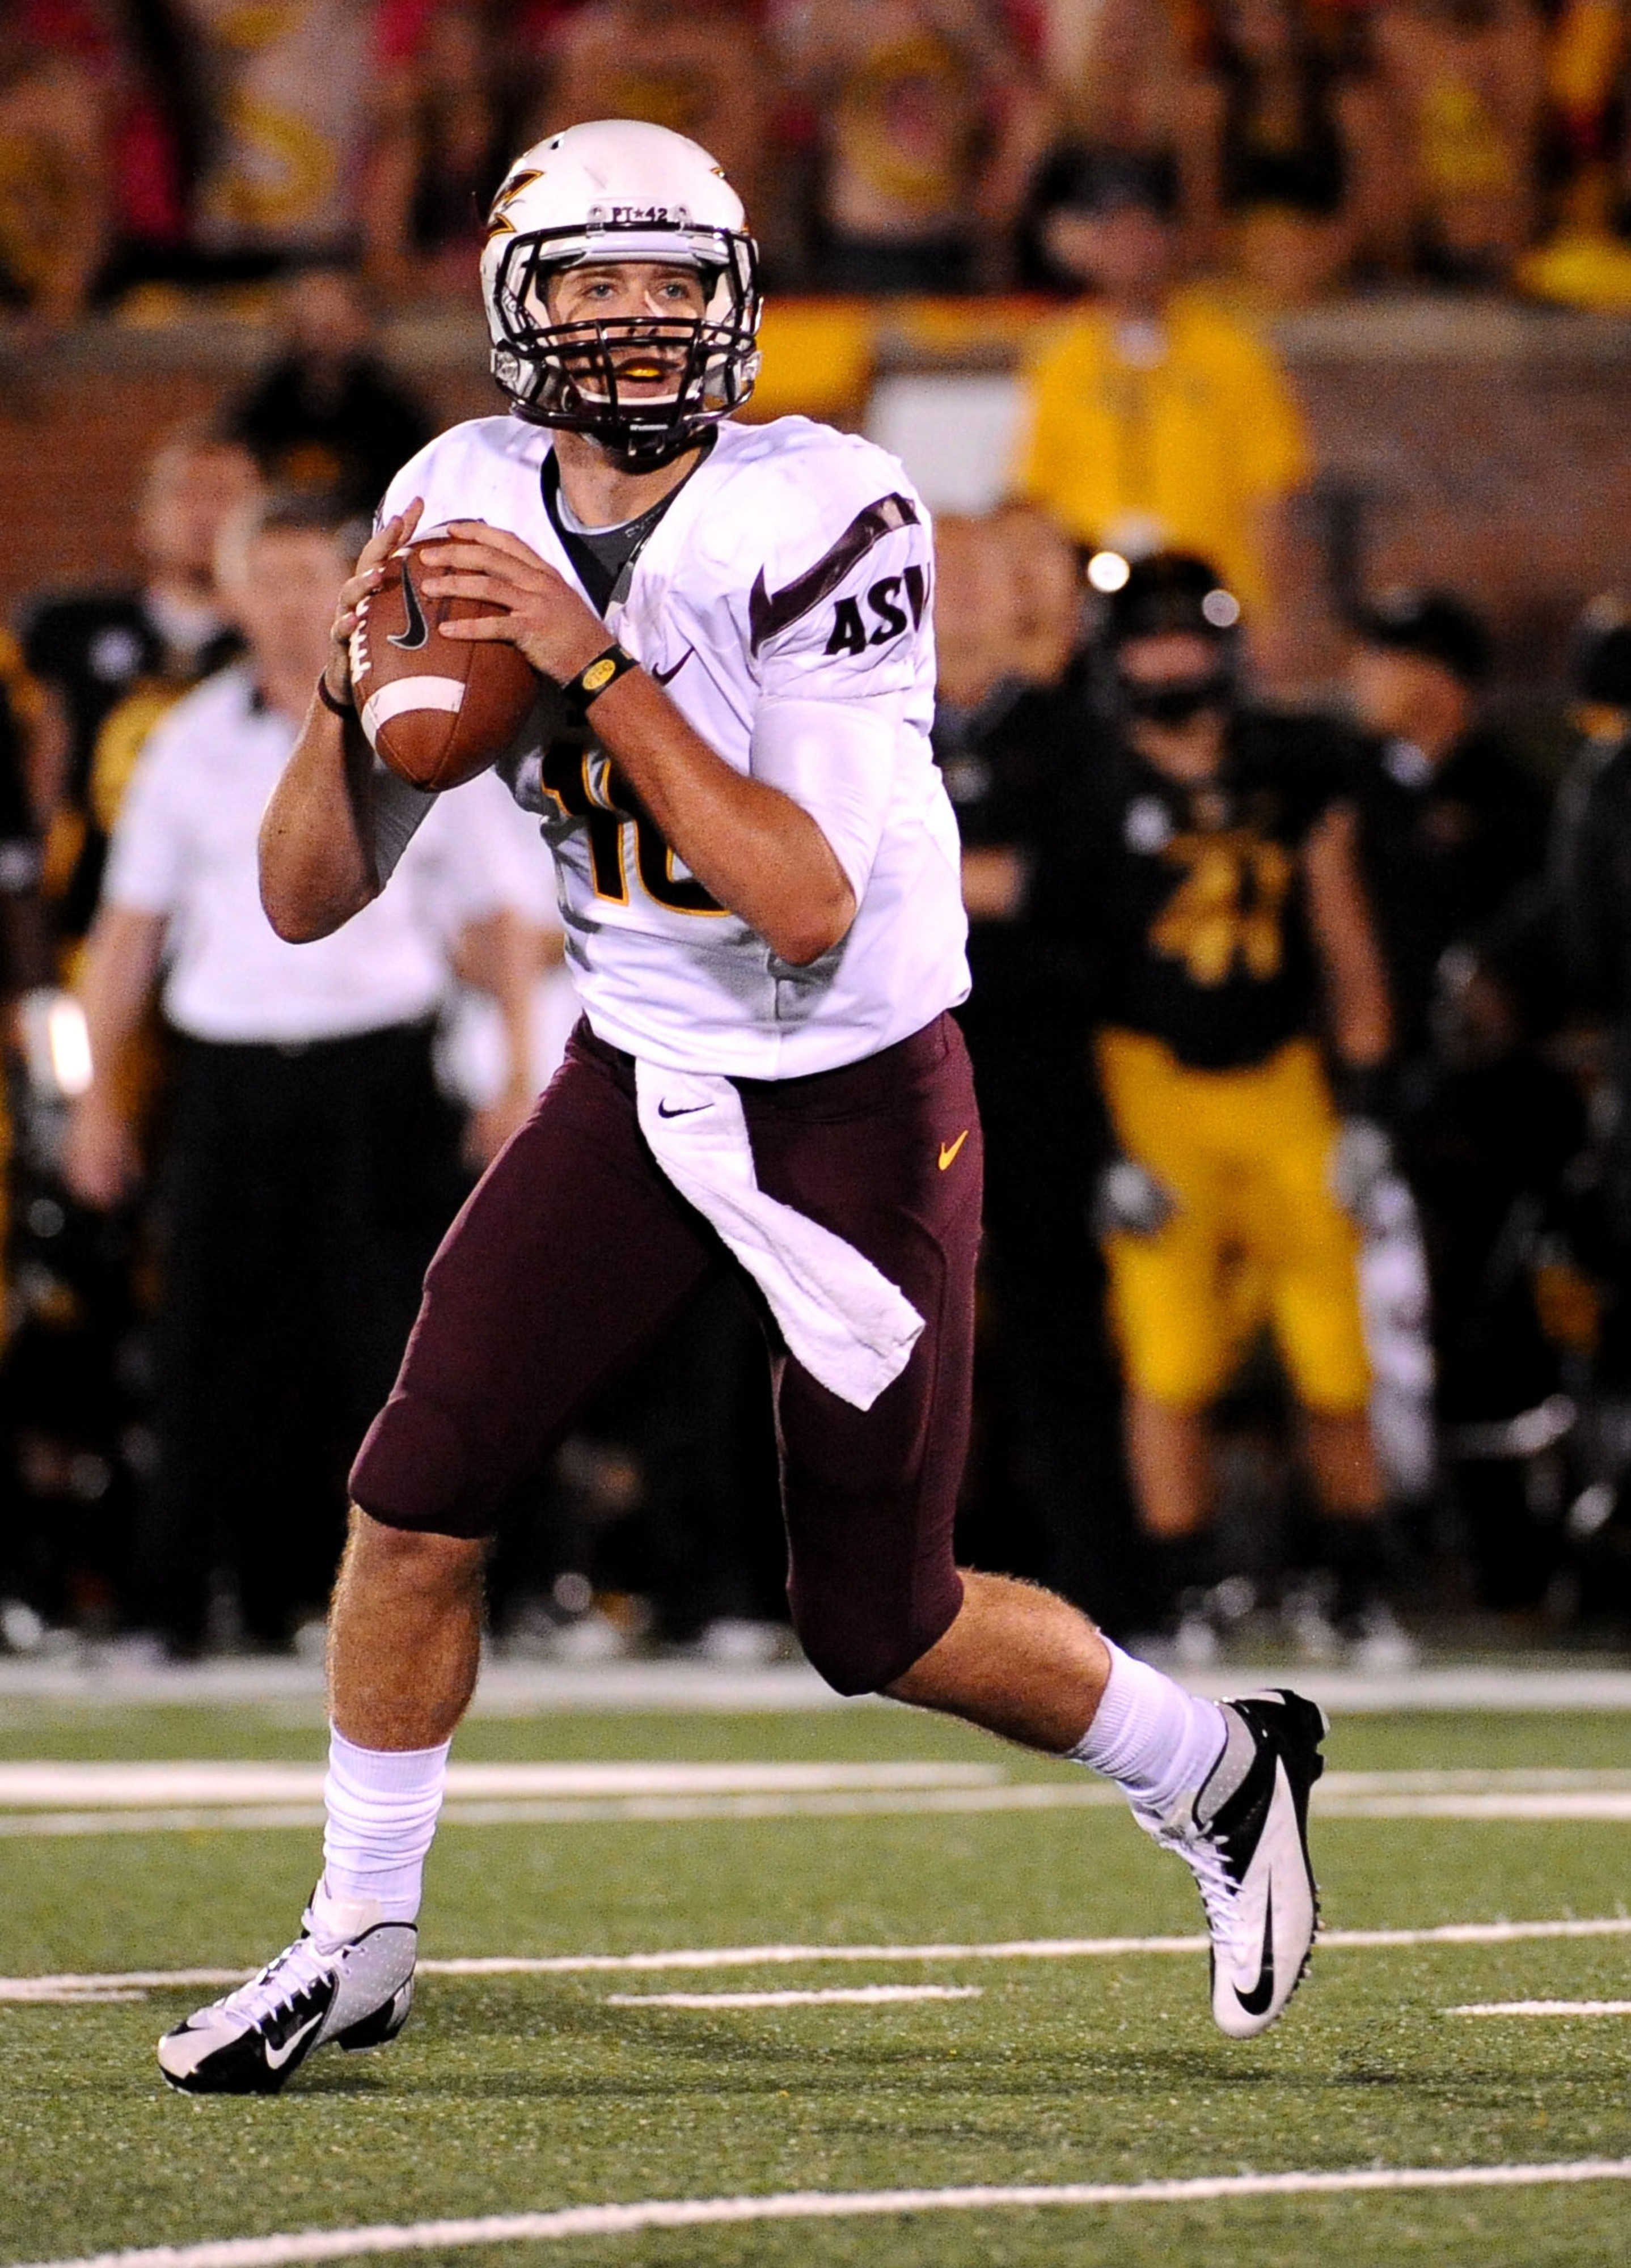 Taylor Kelly will lead the Sun Devils in their first game of 2013.